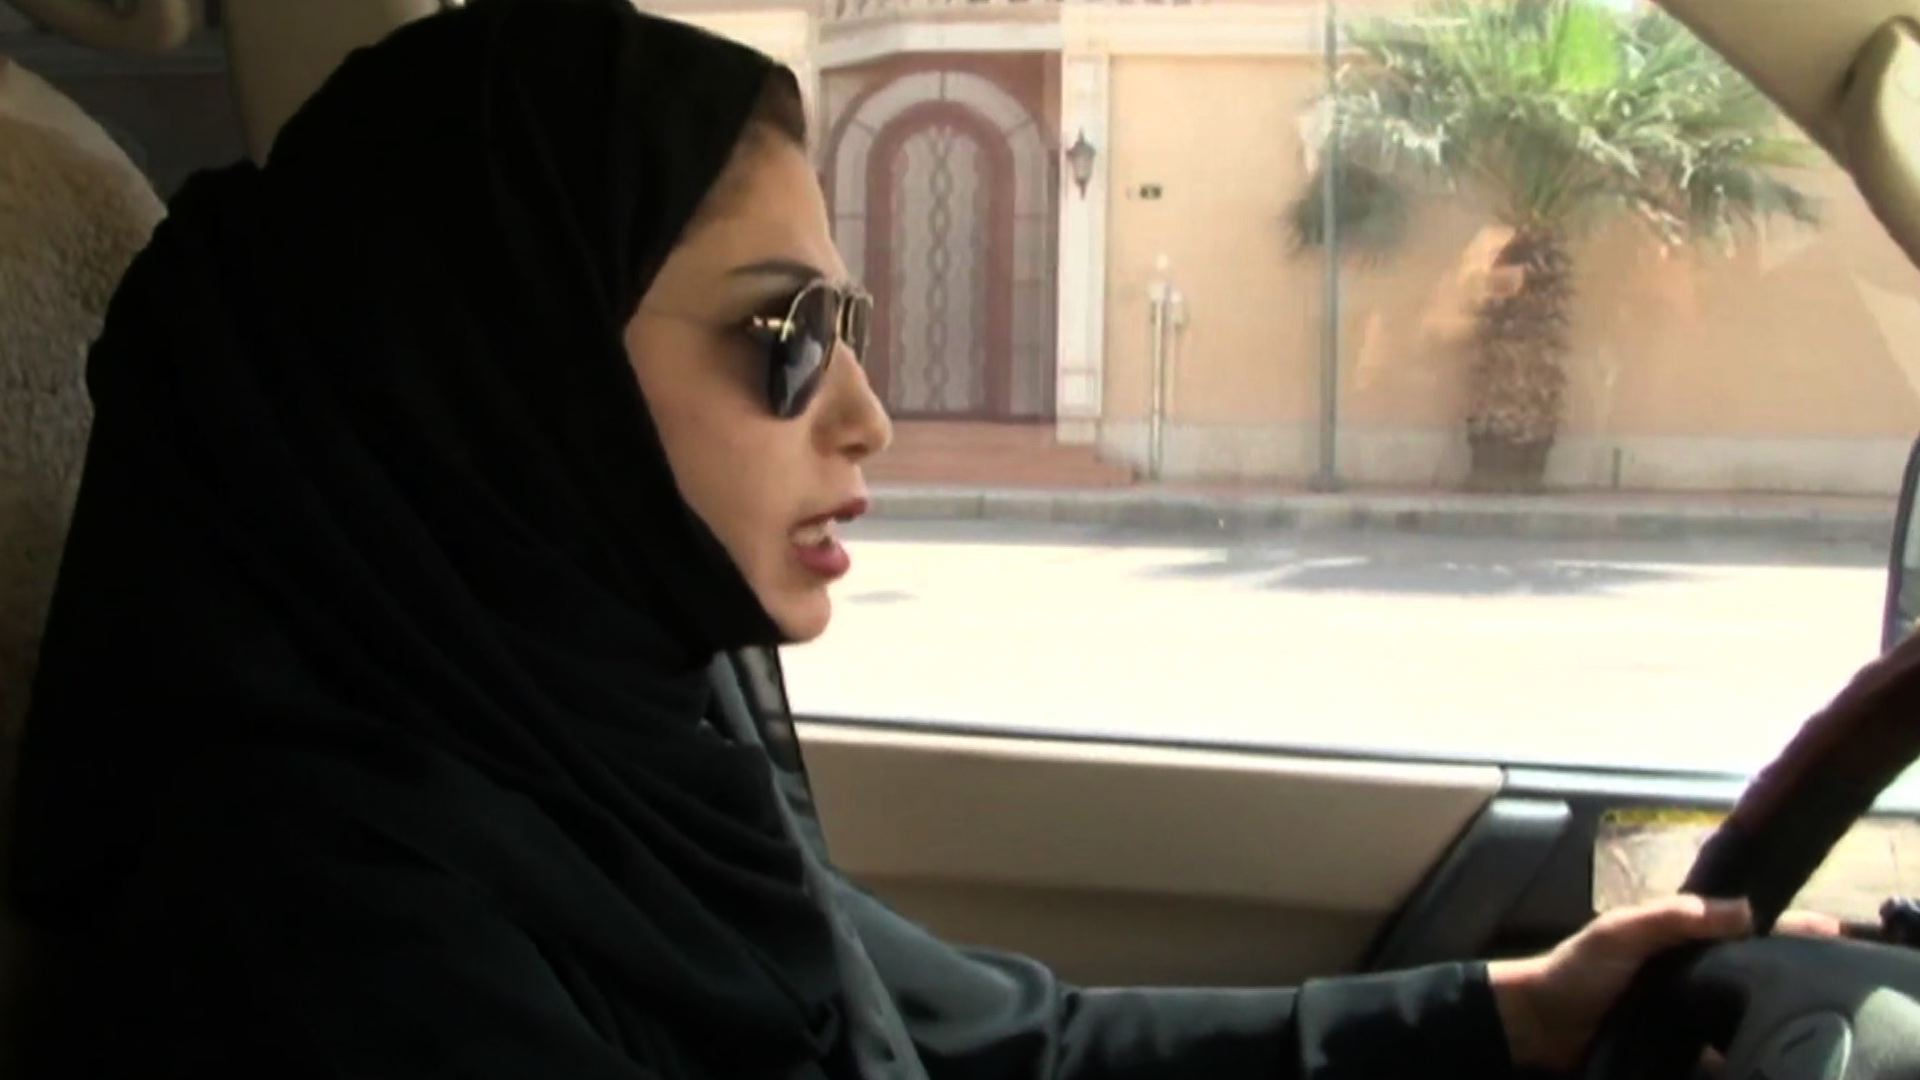 Saudi Arabia allows women to drive, in historic move